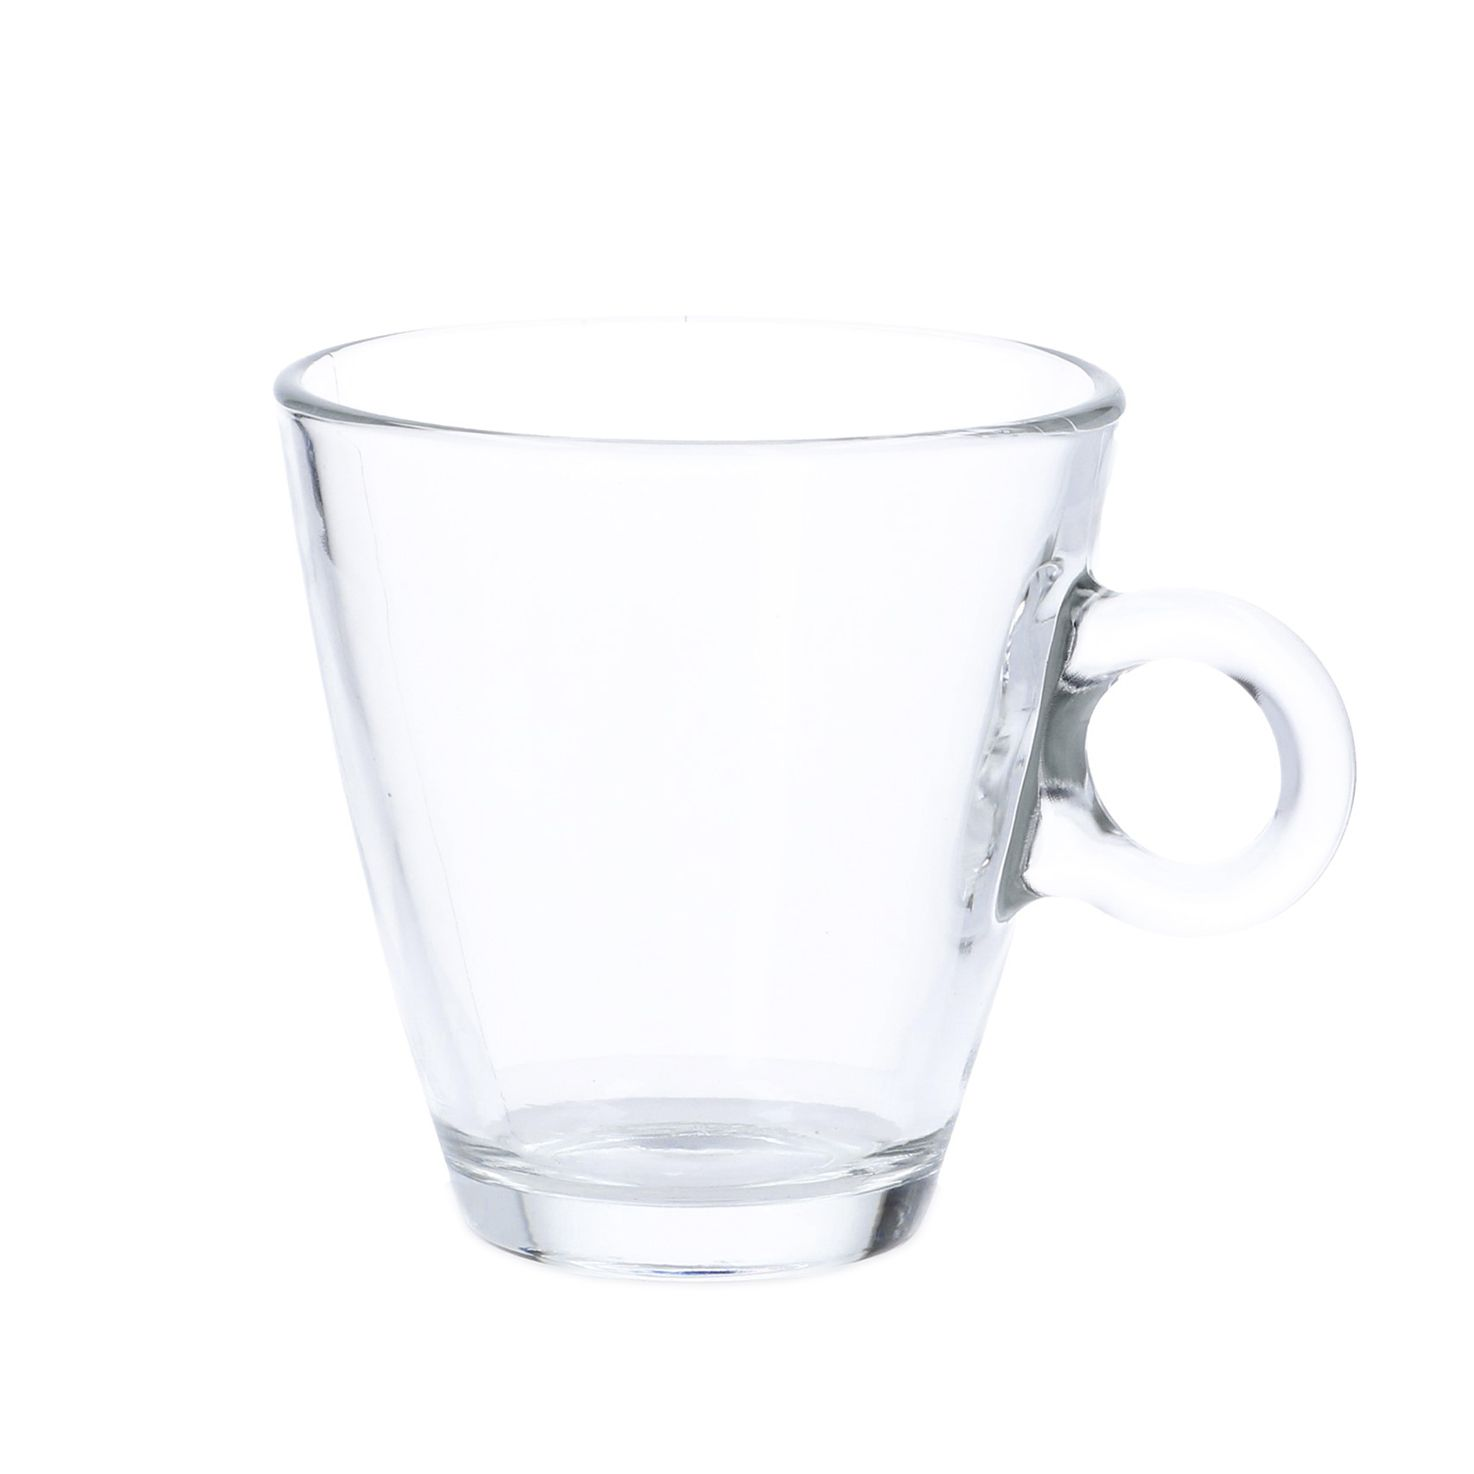 Thee/koffieglas, 31 cl